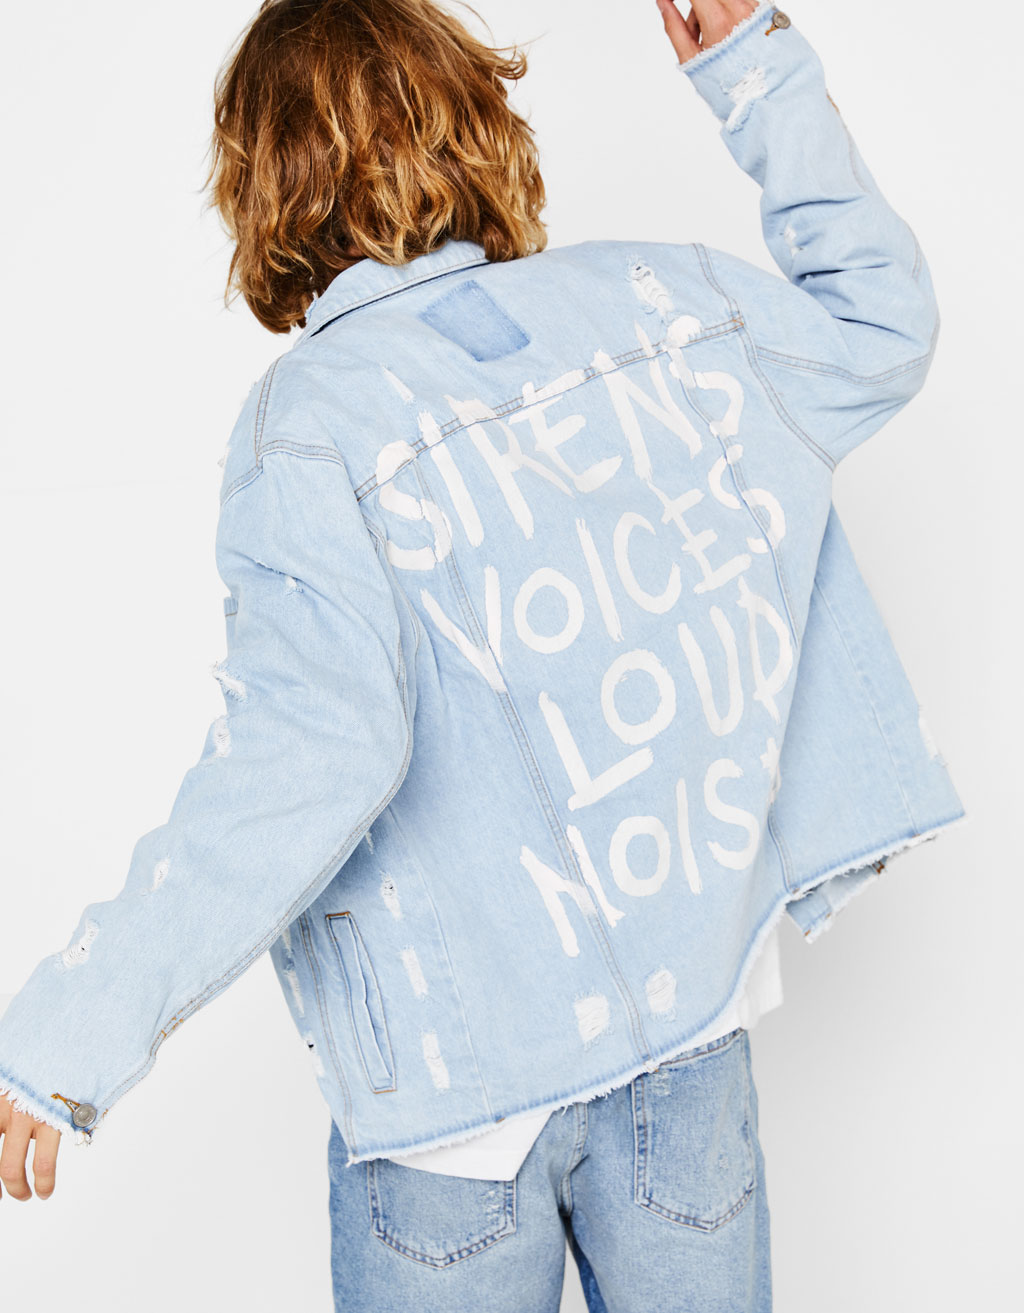 Ripped denim jacket with printed back